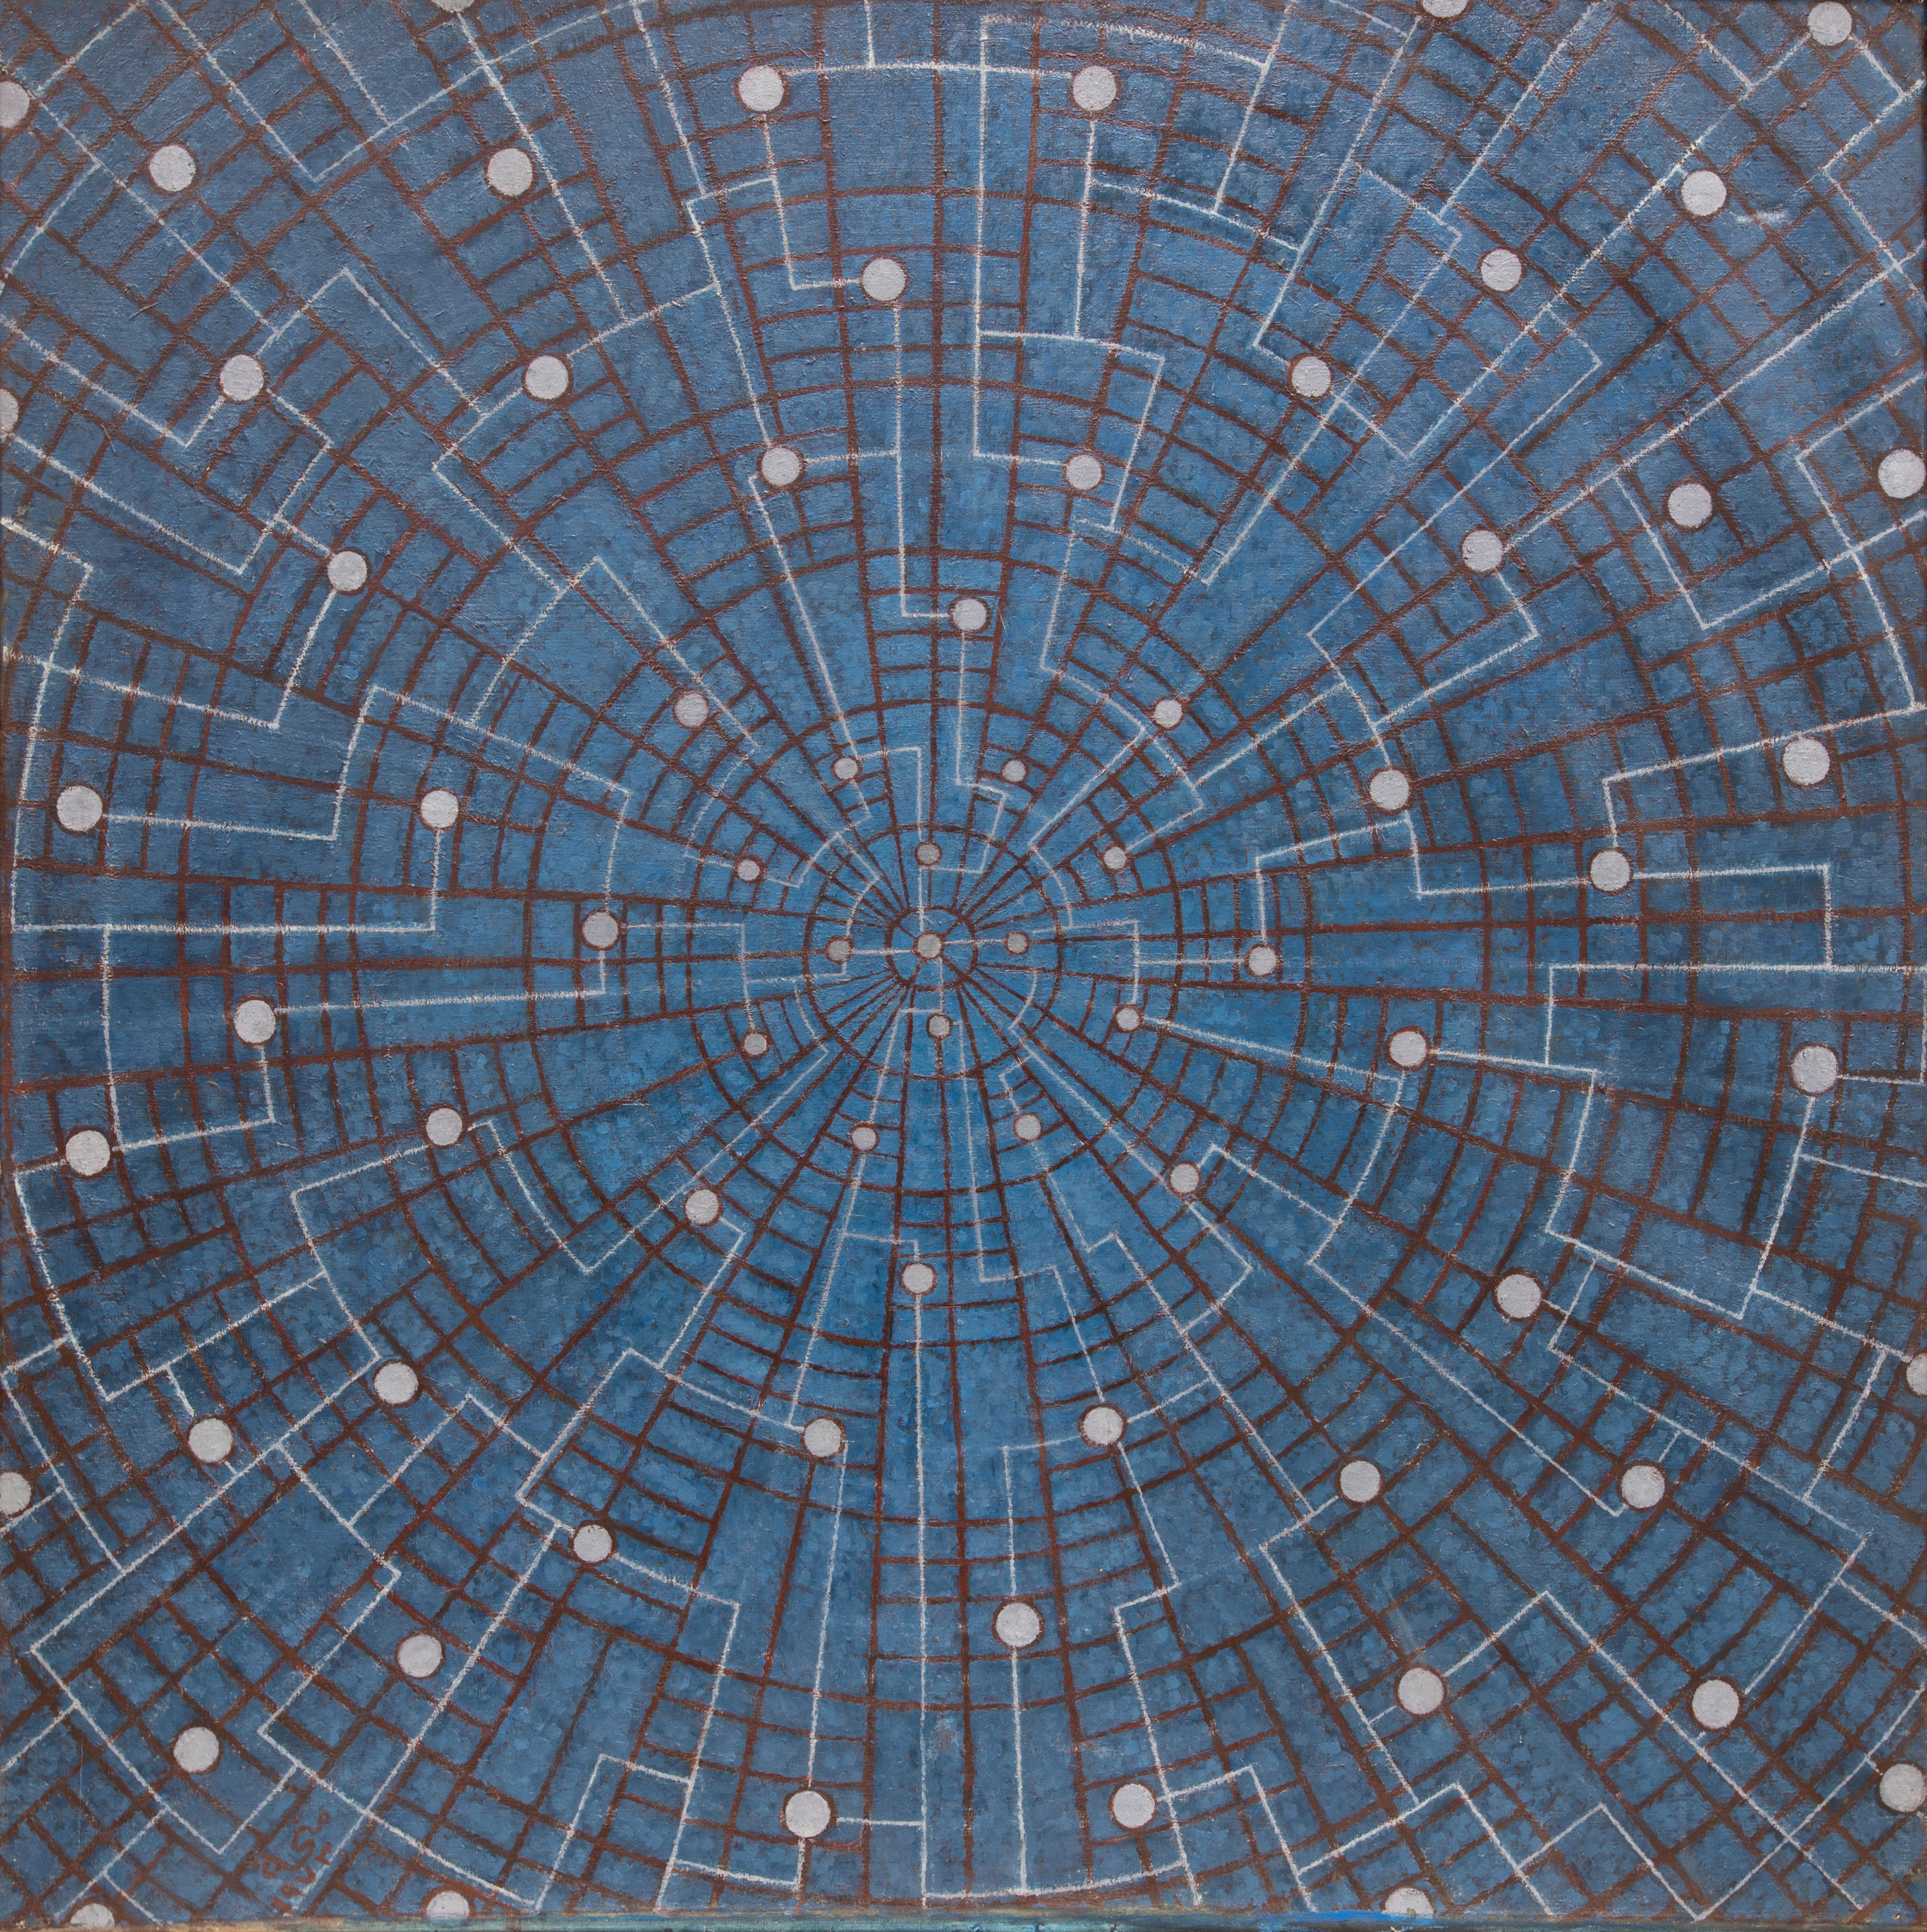 Menhat Helmy, Space Exploration/Universe, 1973, Oil on canvas, 123 × 123 cm. Image courtesy of Barjeel Art Foundation, Sharjah.